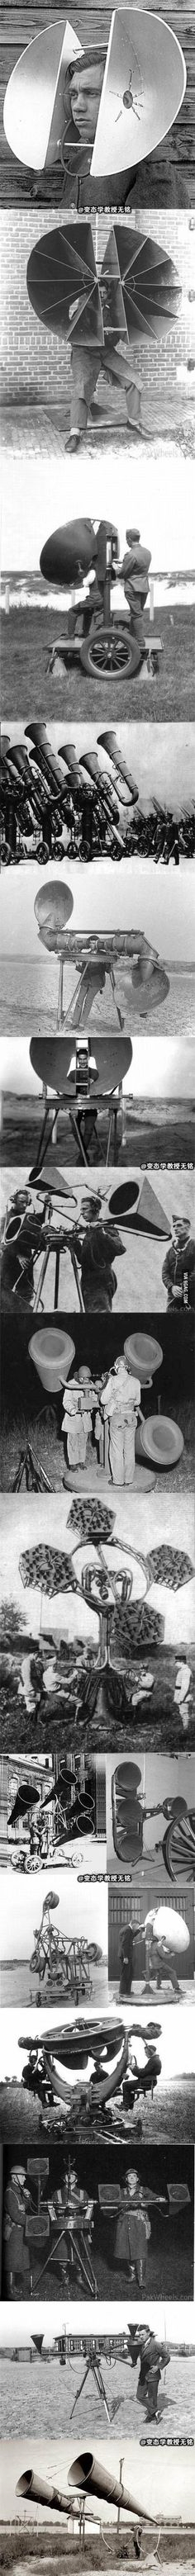 How to spot planes before radar was invented